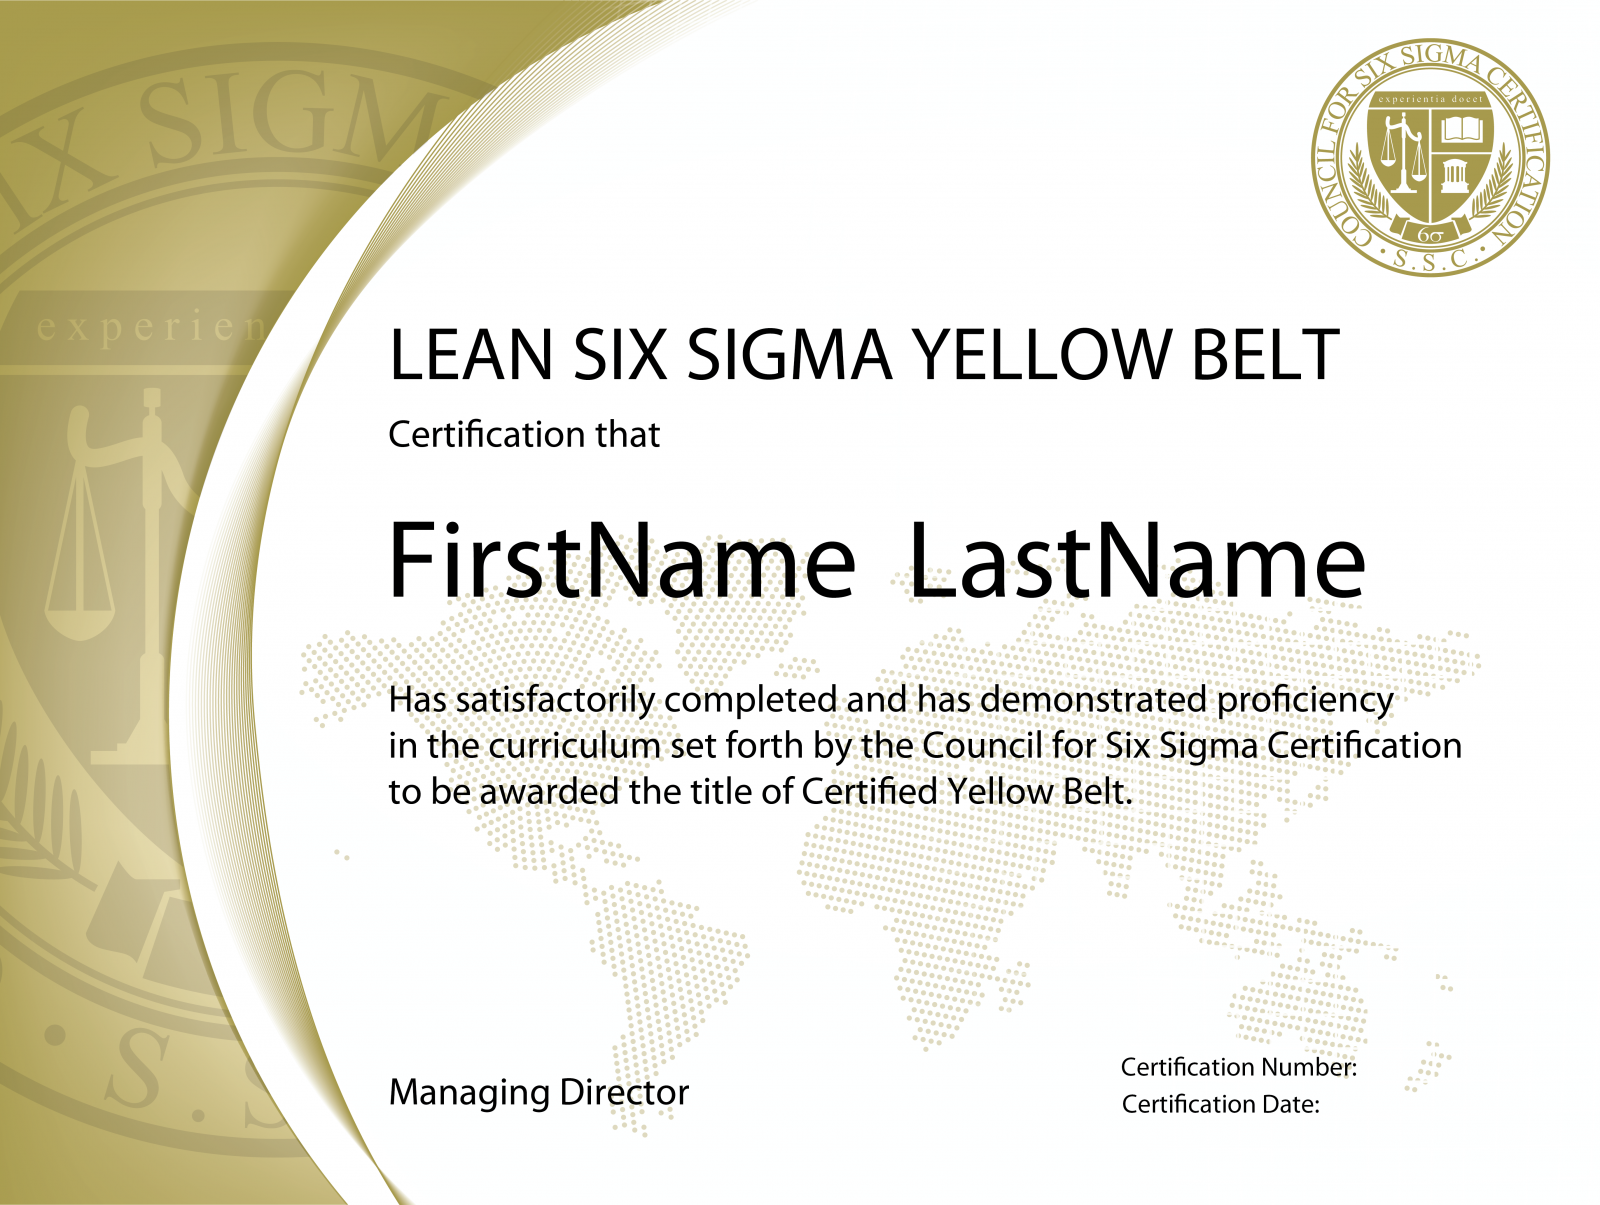 Lean Six Sigma Yellow Belt Certification The Council For Six Sigma